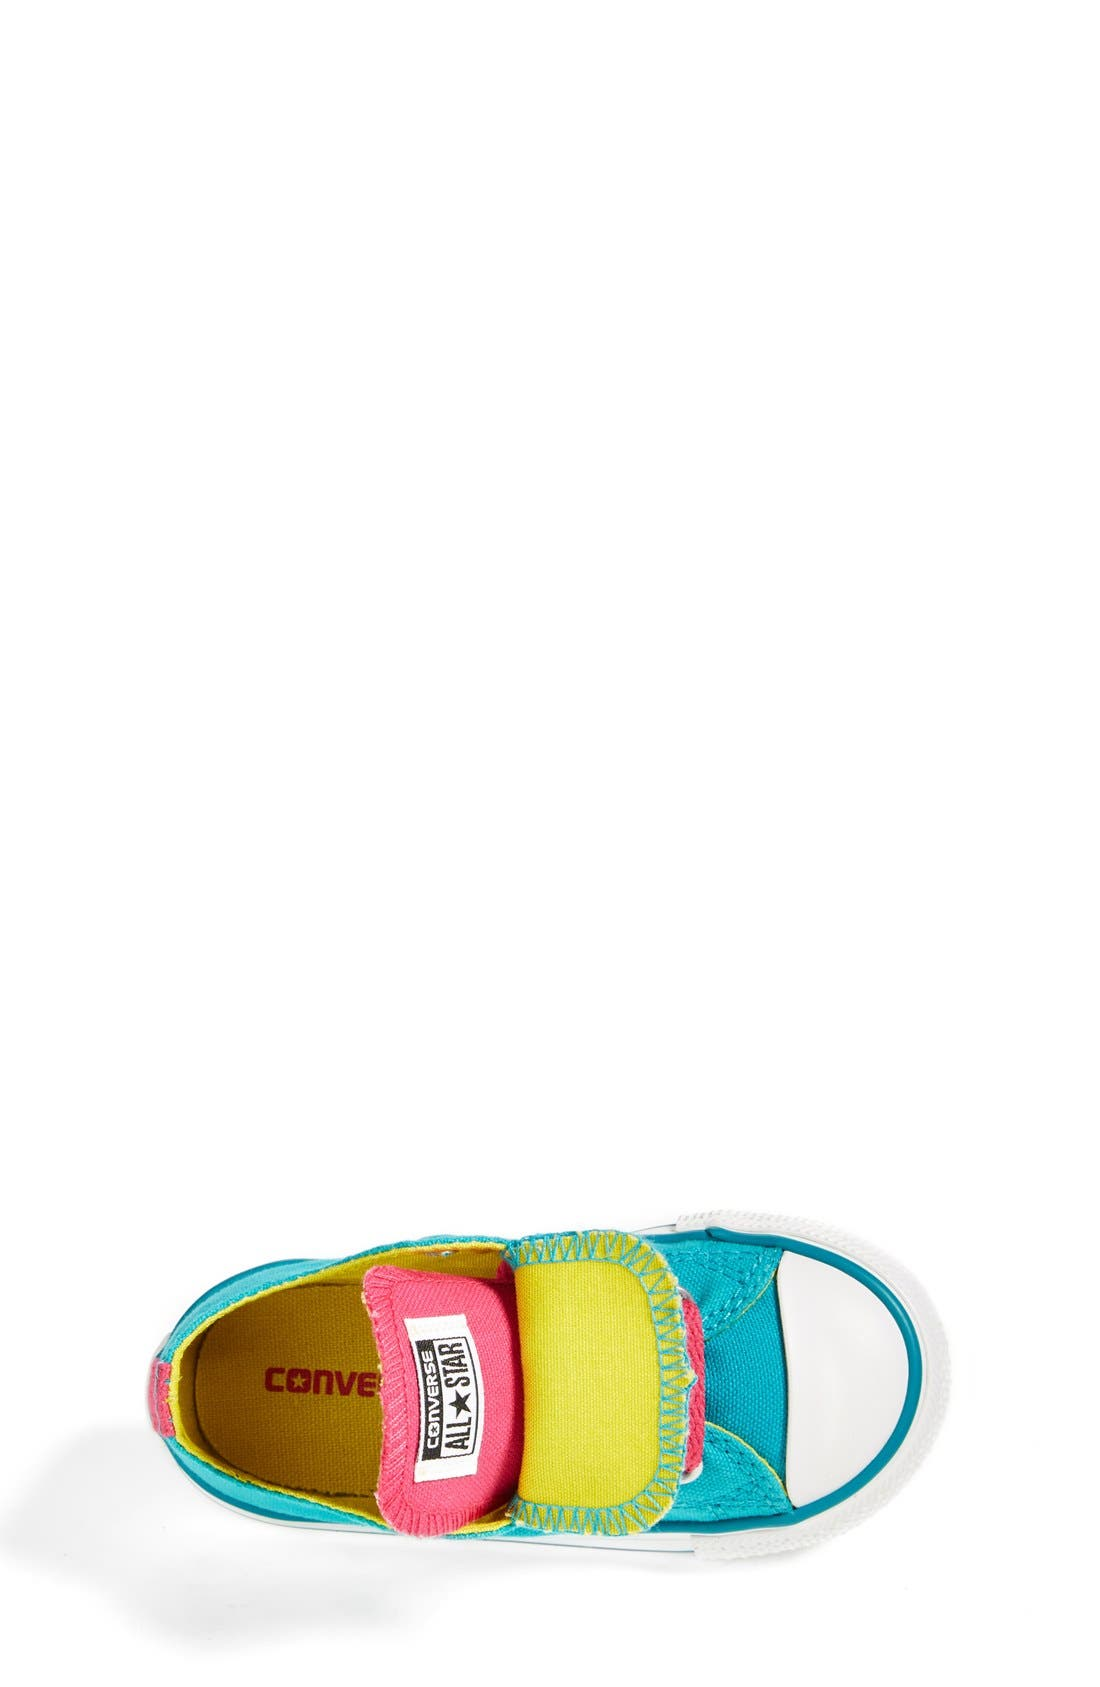 Alternate Image 3  - Converse Chuck Taylor® All Star® 'Double Tongue' Sneaker (Baby, Walker, Toddler, Little Kid & Big Kid)